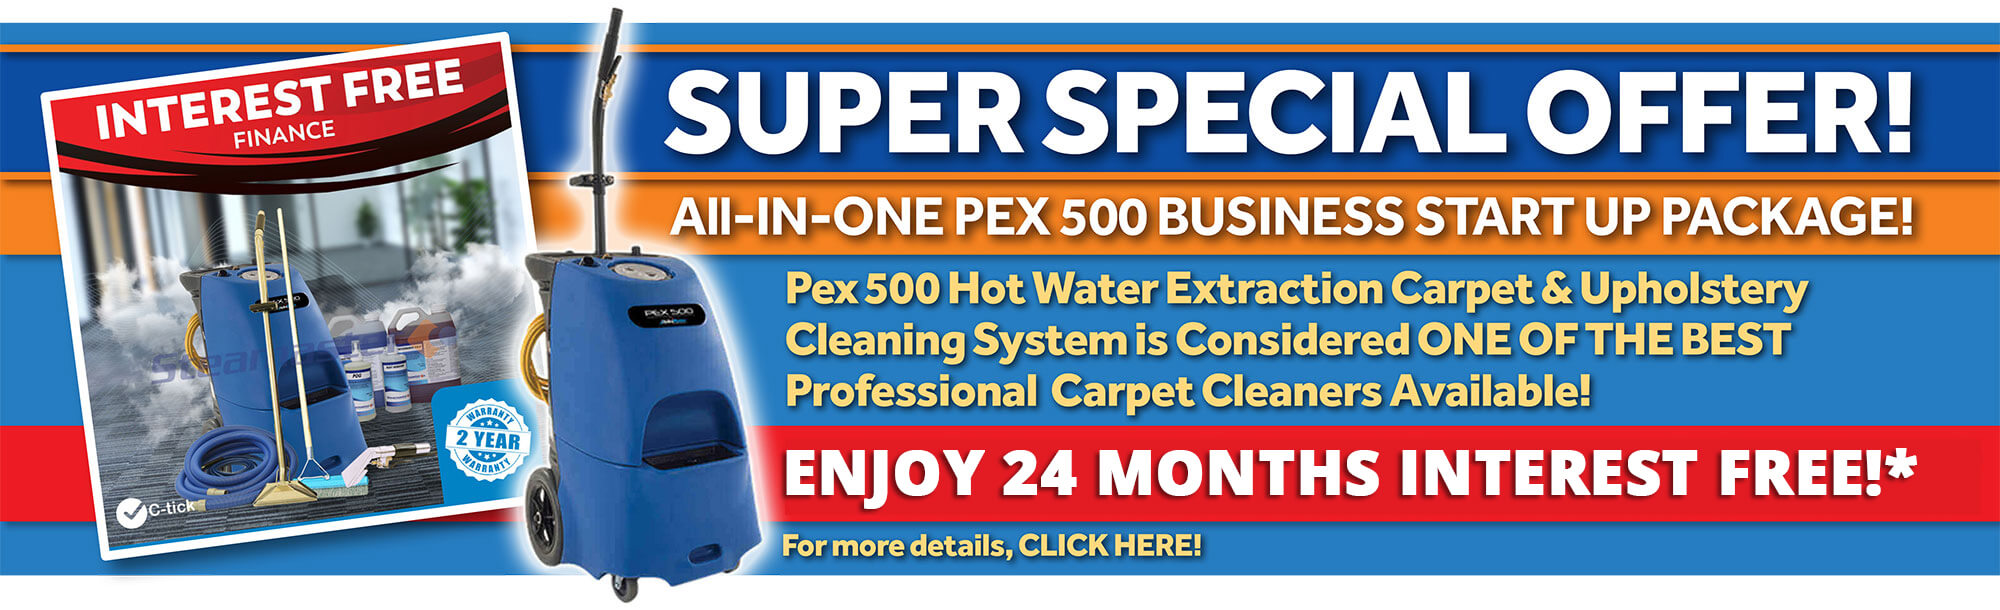 Buy Best Carpet Cleaning Products, Solutions, Powder and Chemicals at wholesale prices - Steamaster Australia